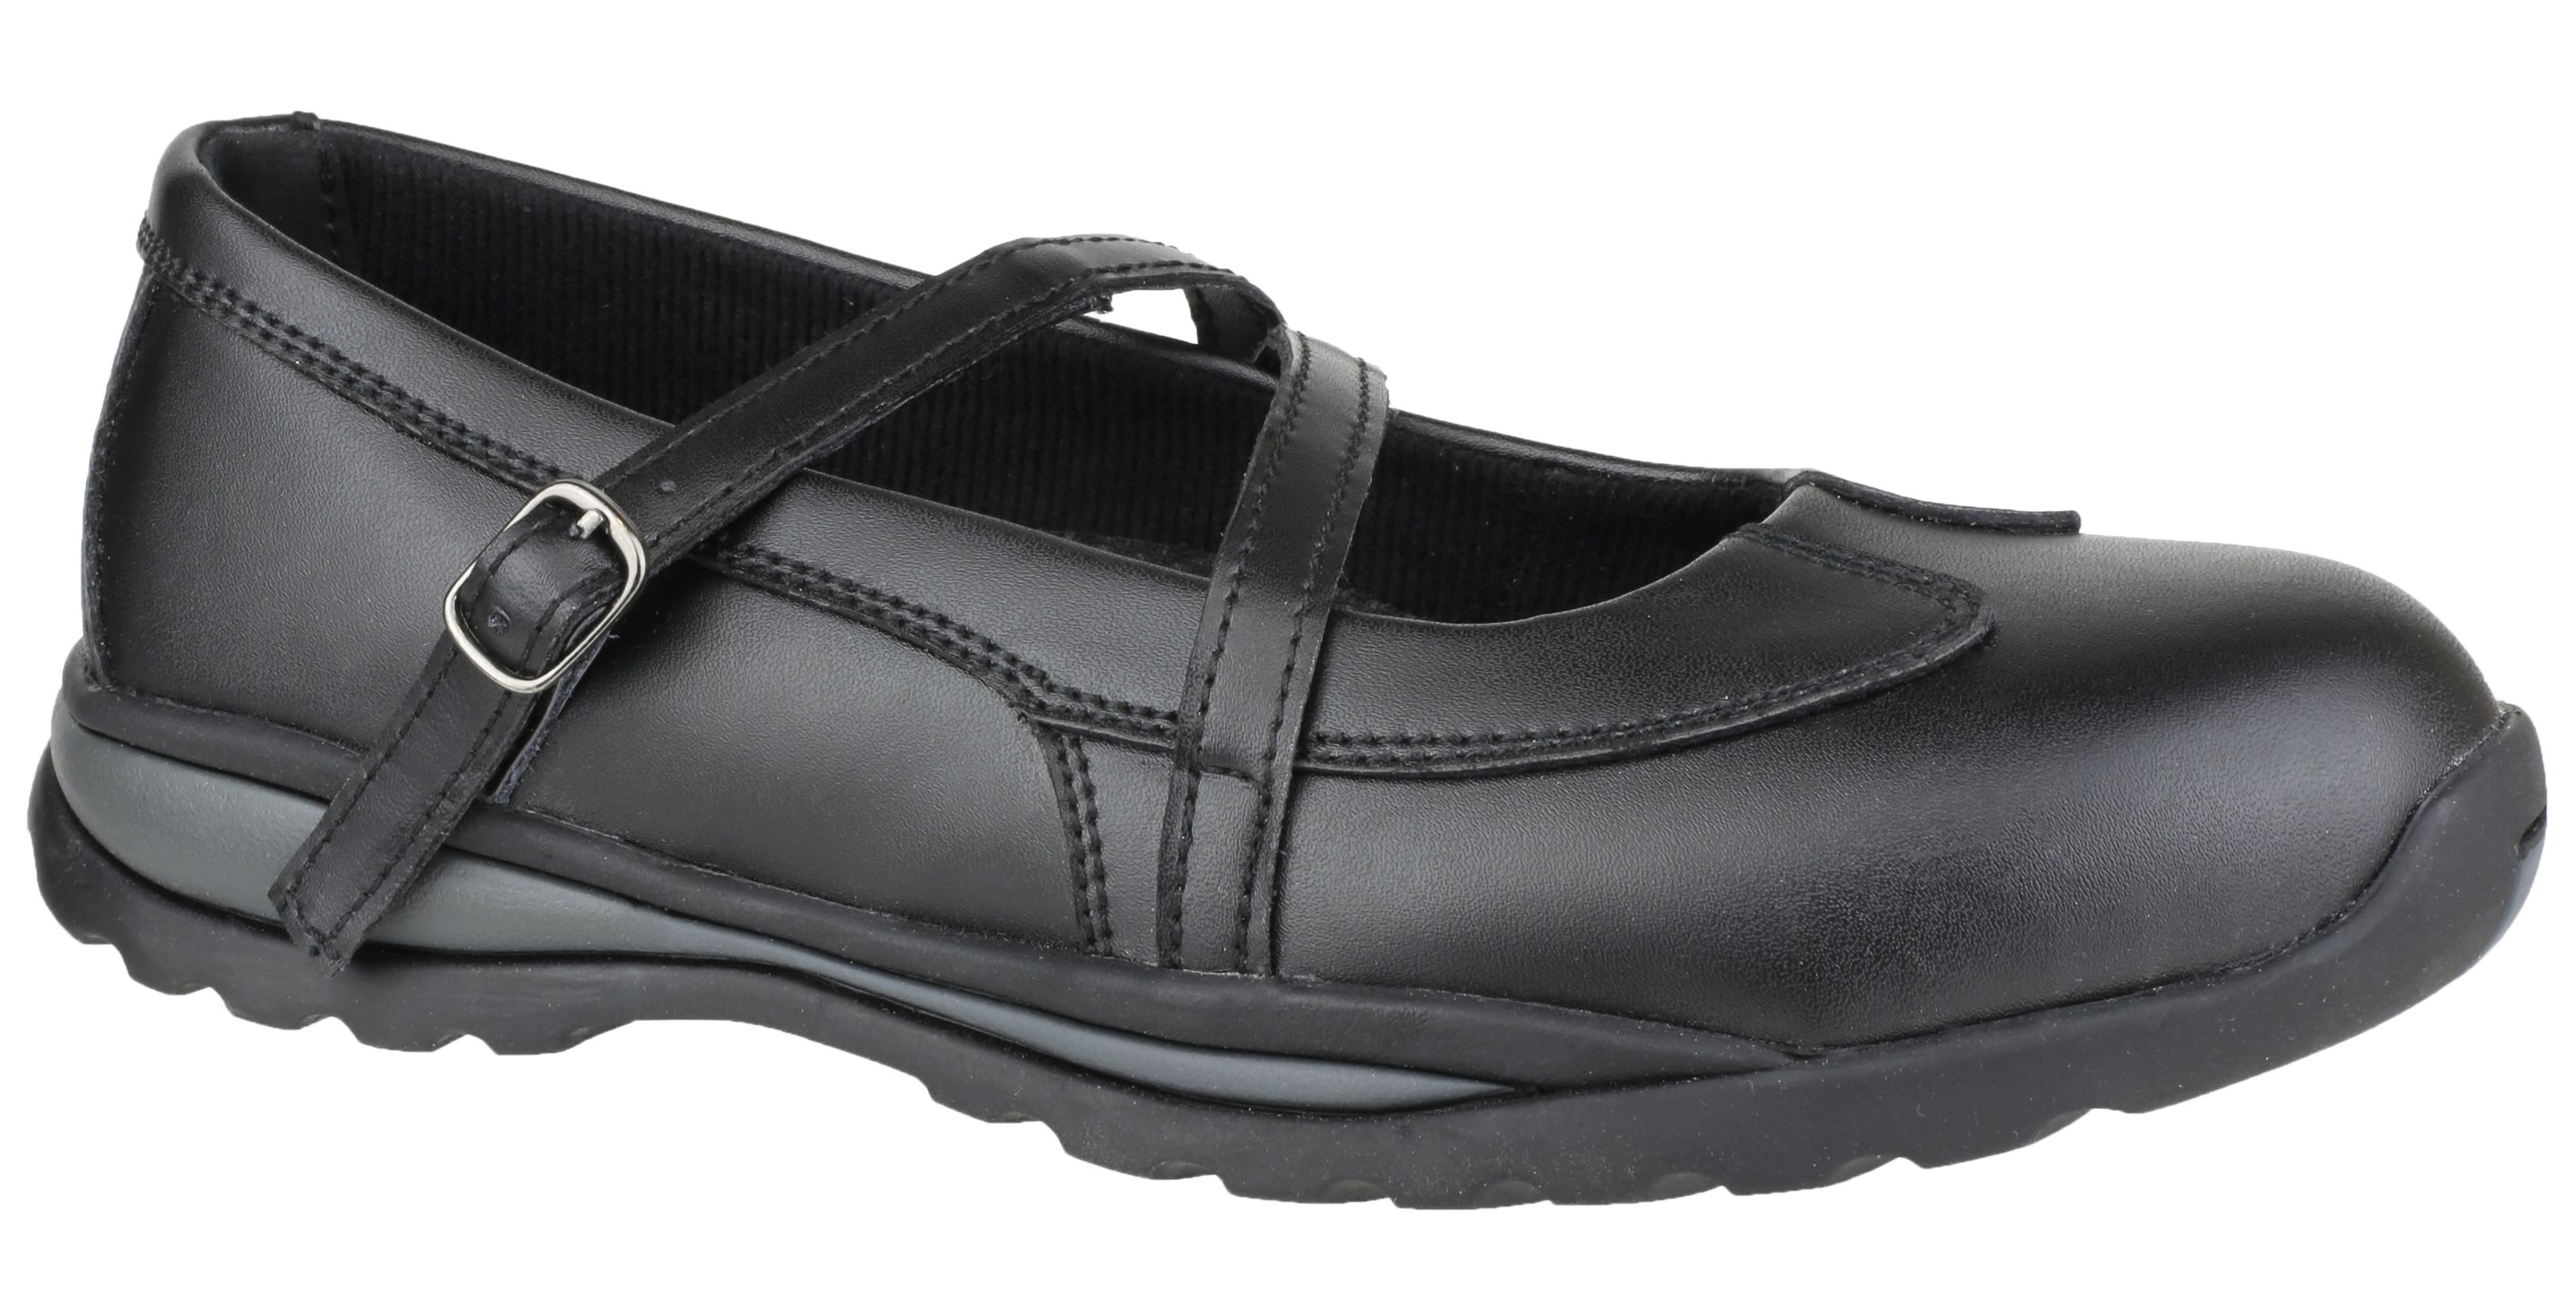 Amblers Safety Fs55 Mary Jane Las Shoe Ideal For Office Stock Room